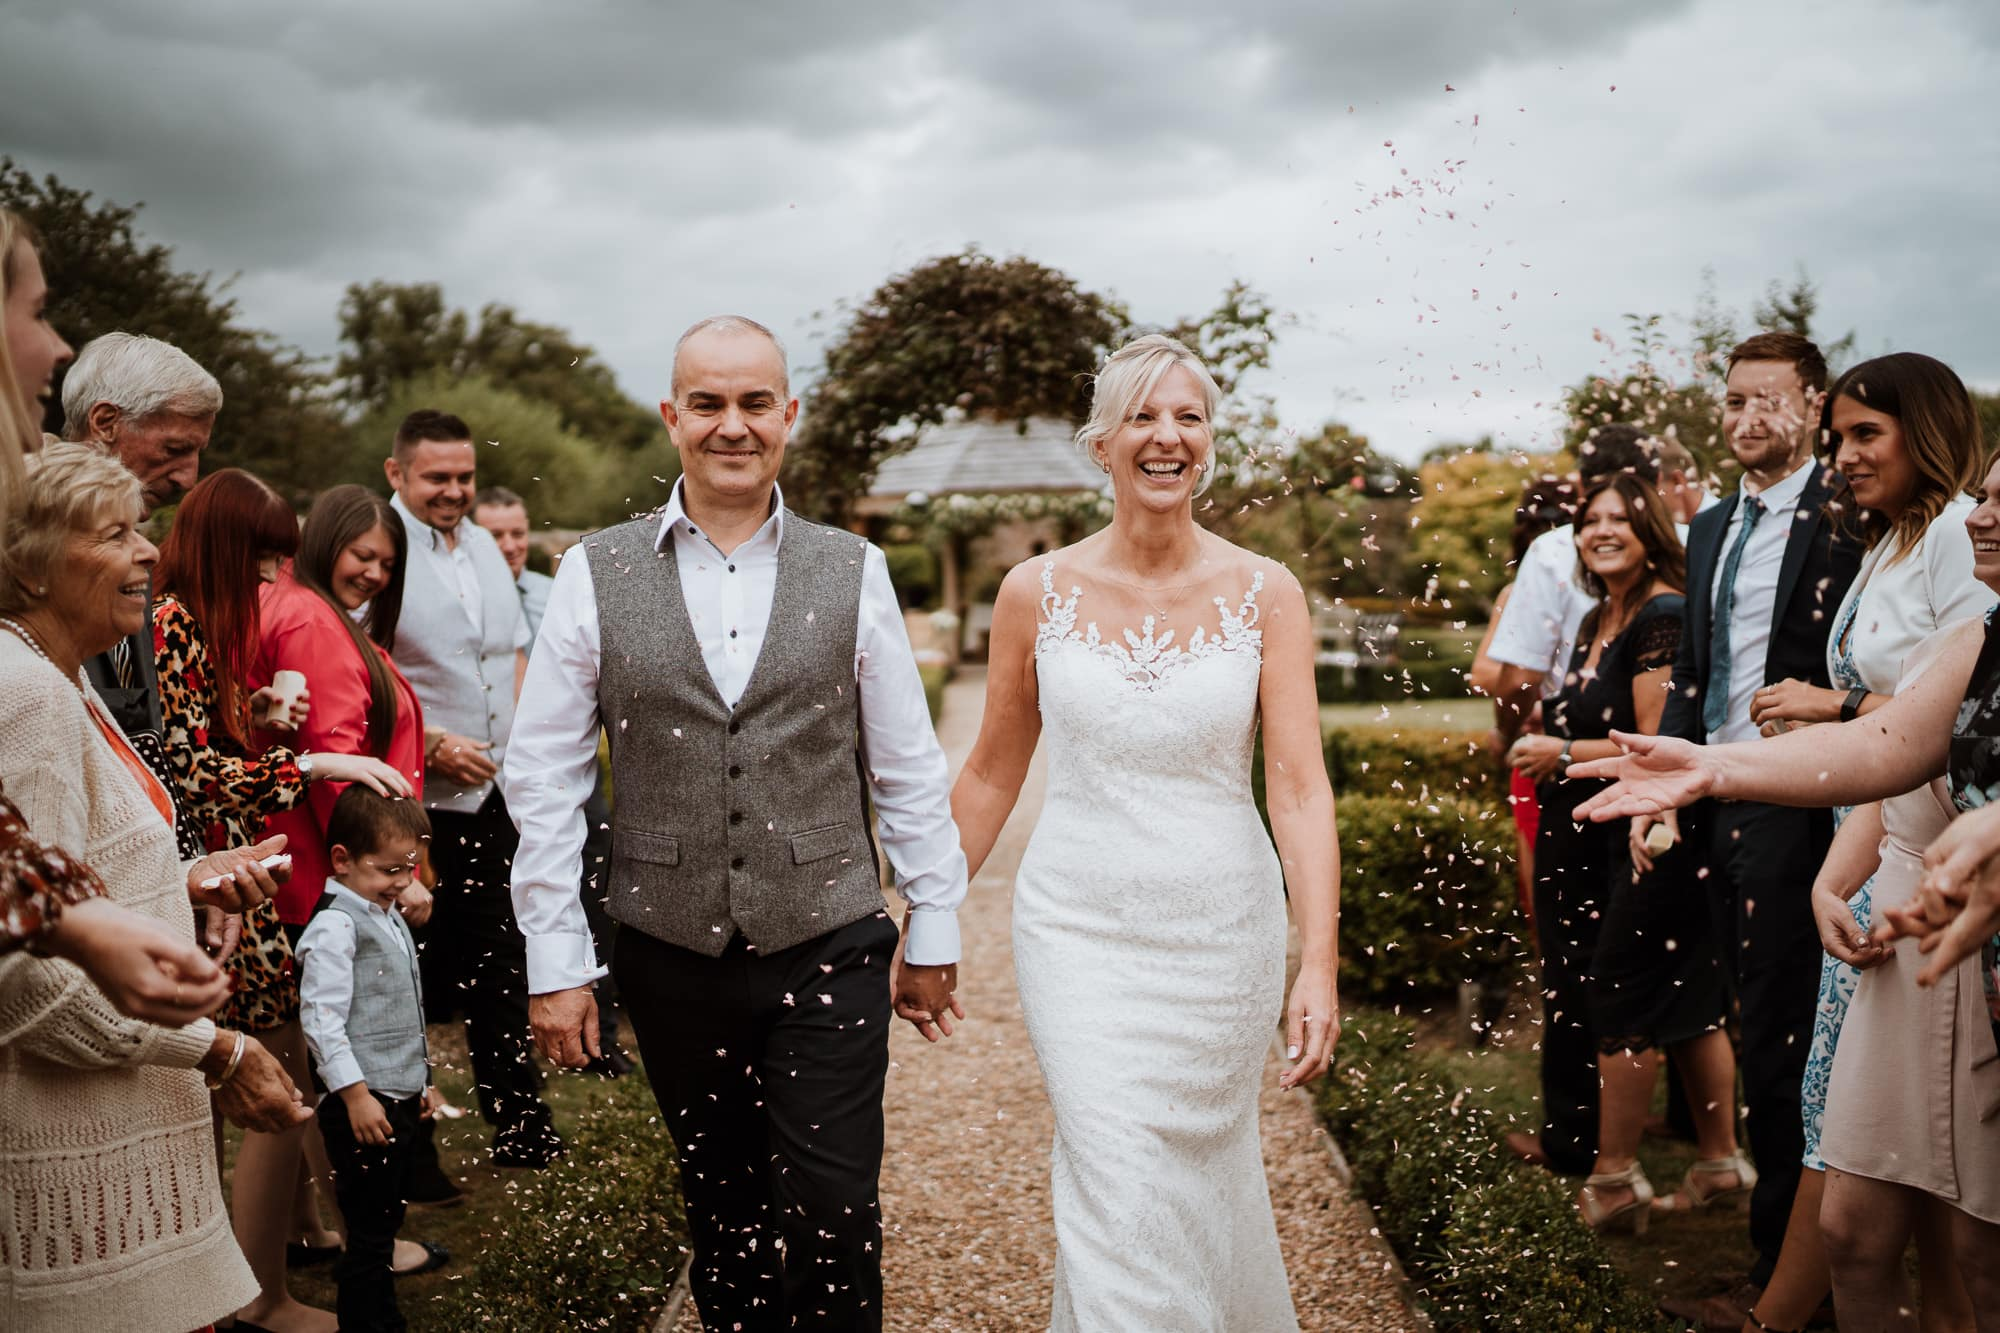 Bride and Groom smiling as they walk through a tunnel of confetti at The Secret Garden